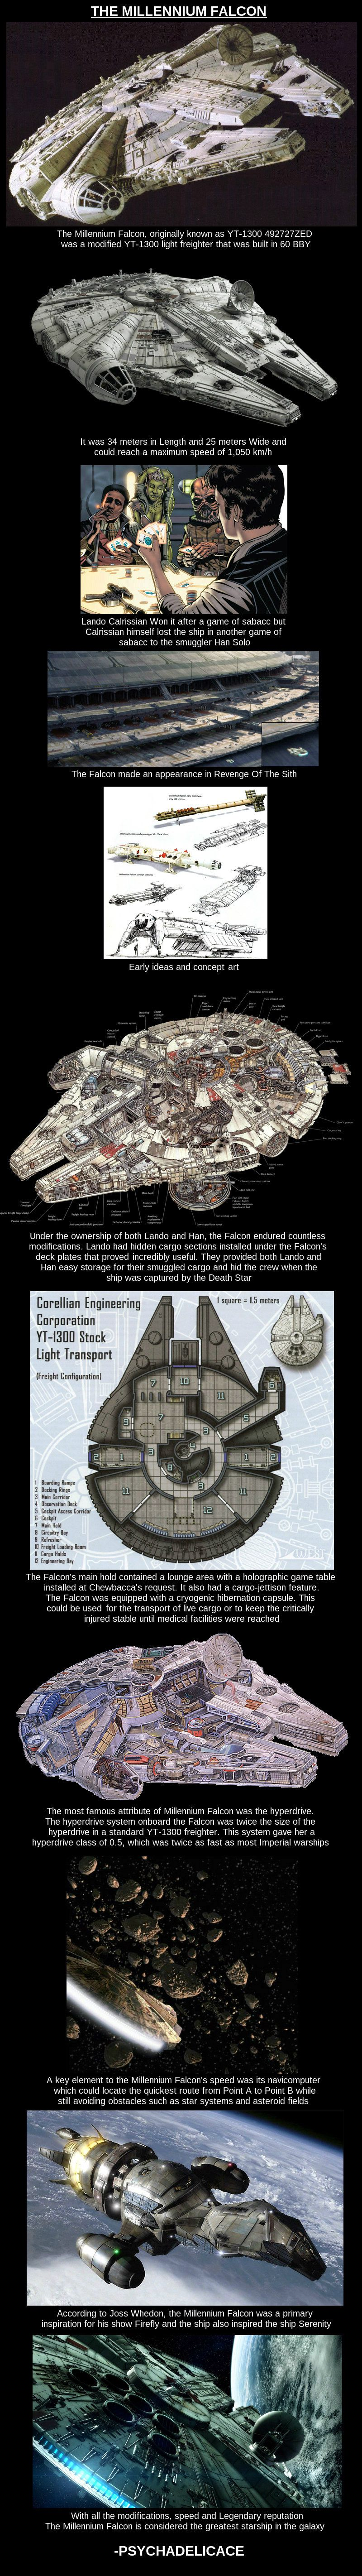 infographie-infographic-star-wars-fact [800 x 5688]